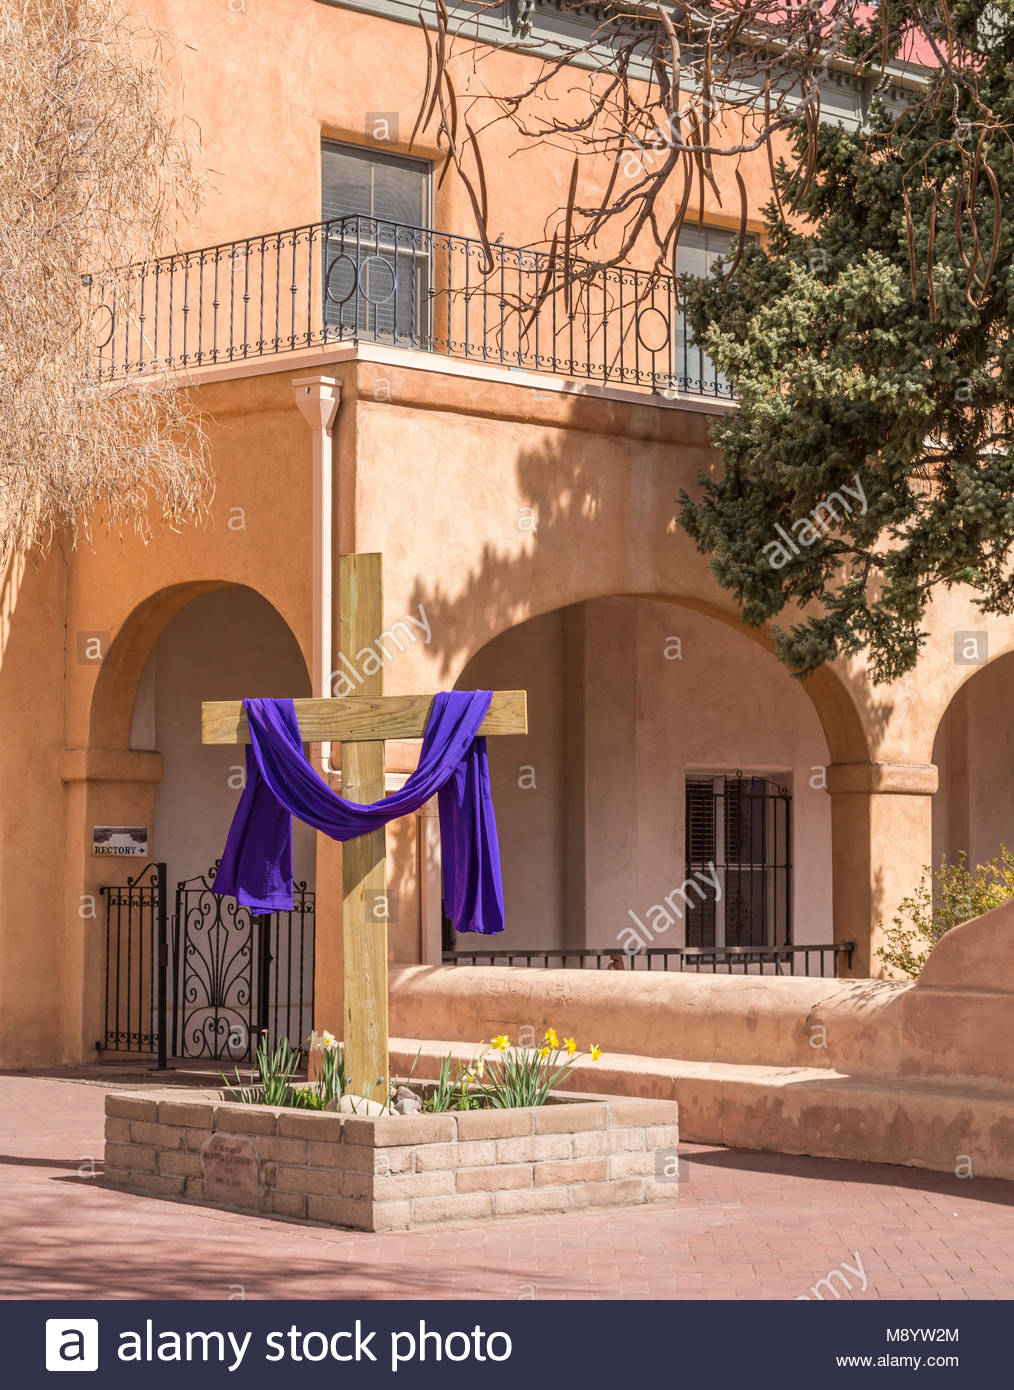 Easter cross draped in purple cloth at San Felipe de Neri Catholic Church in Albuquerque Old Town, New Mexico, USA. - Stock Image